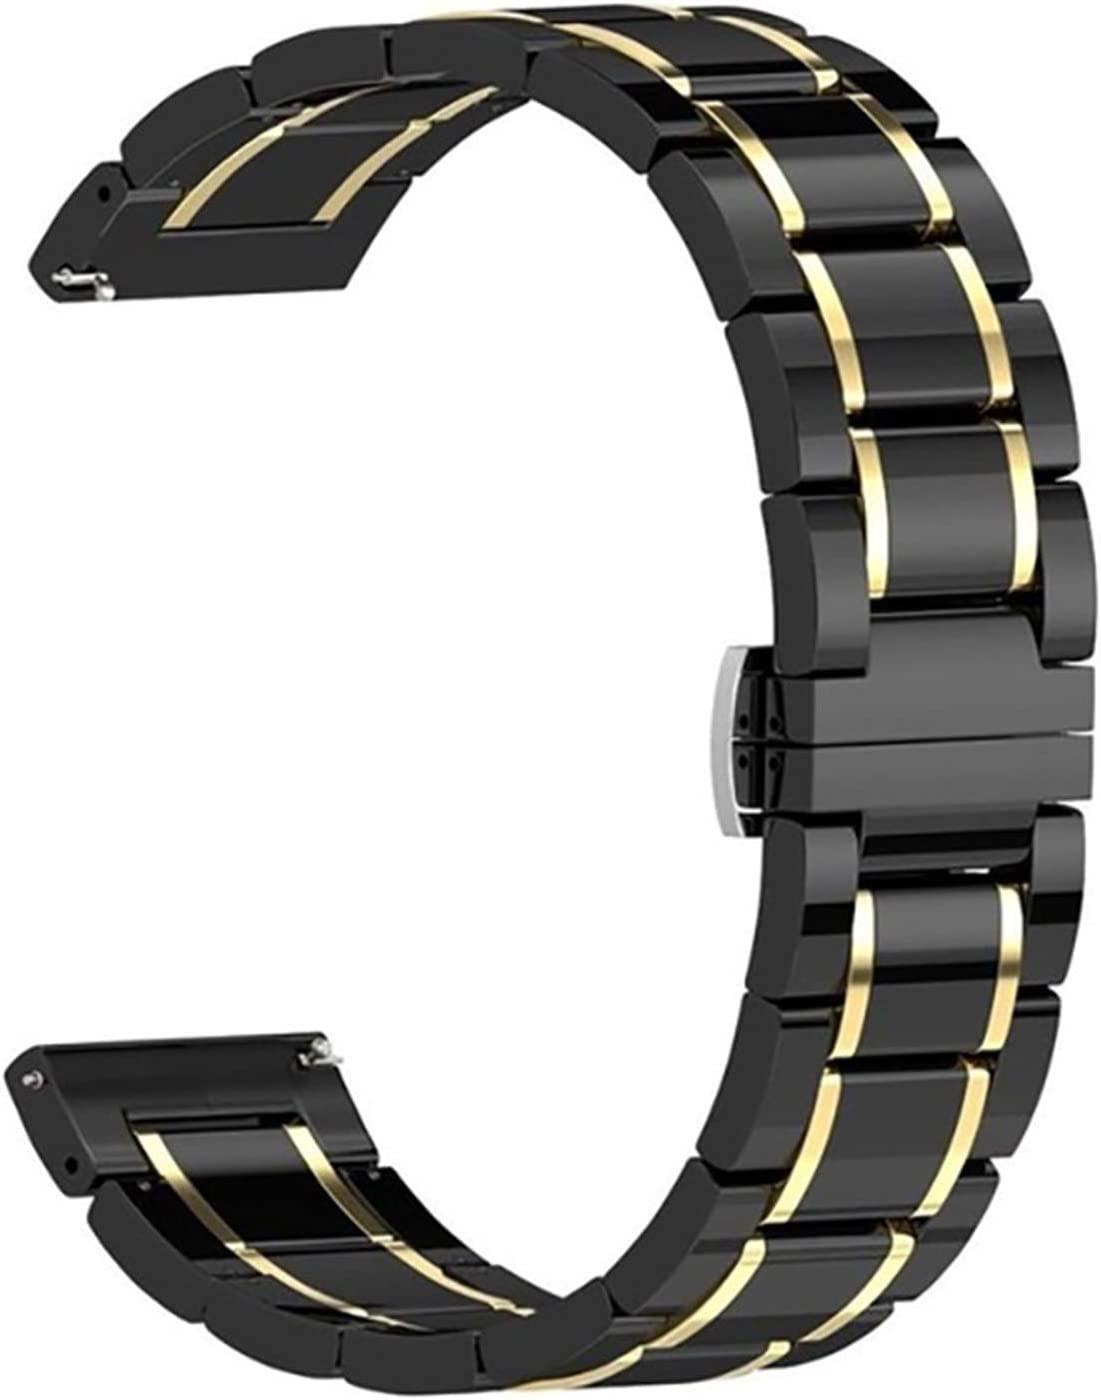 Rarting Flyuzi Ceramic Strap for Apple Watch Band 44mm 40mm 42mm 38mm Accessories Stainless Butterfly Buckle Bracelet for IWatch Series 6 Se 5 4 3 (Band Color : 2, Band Width : 38mmor40mm)